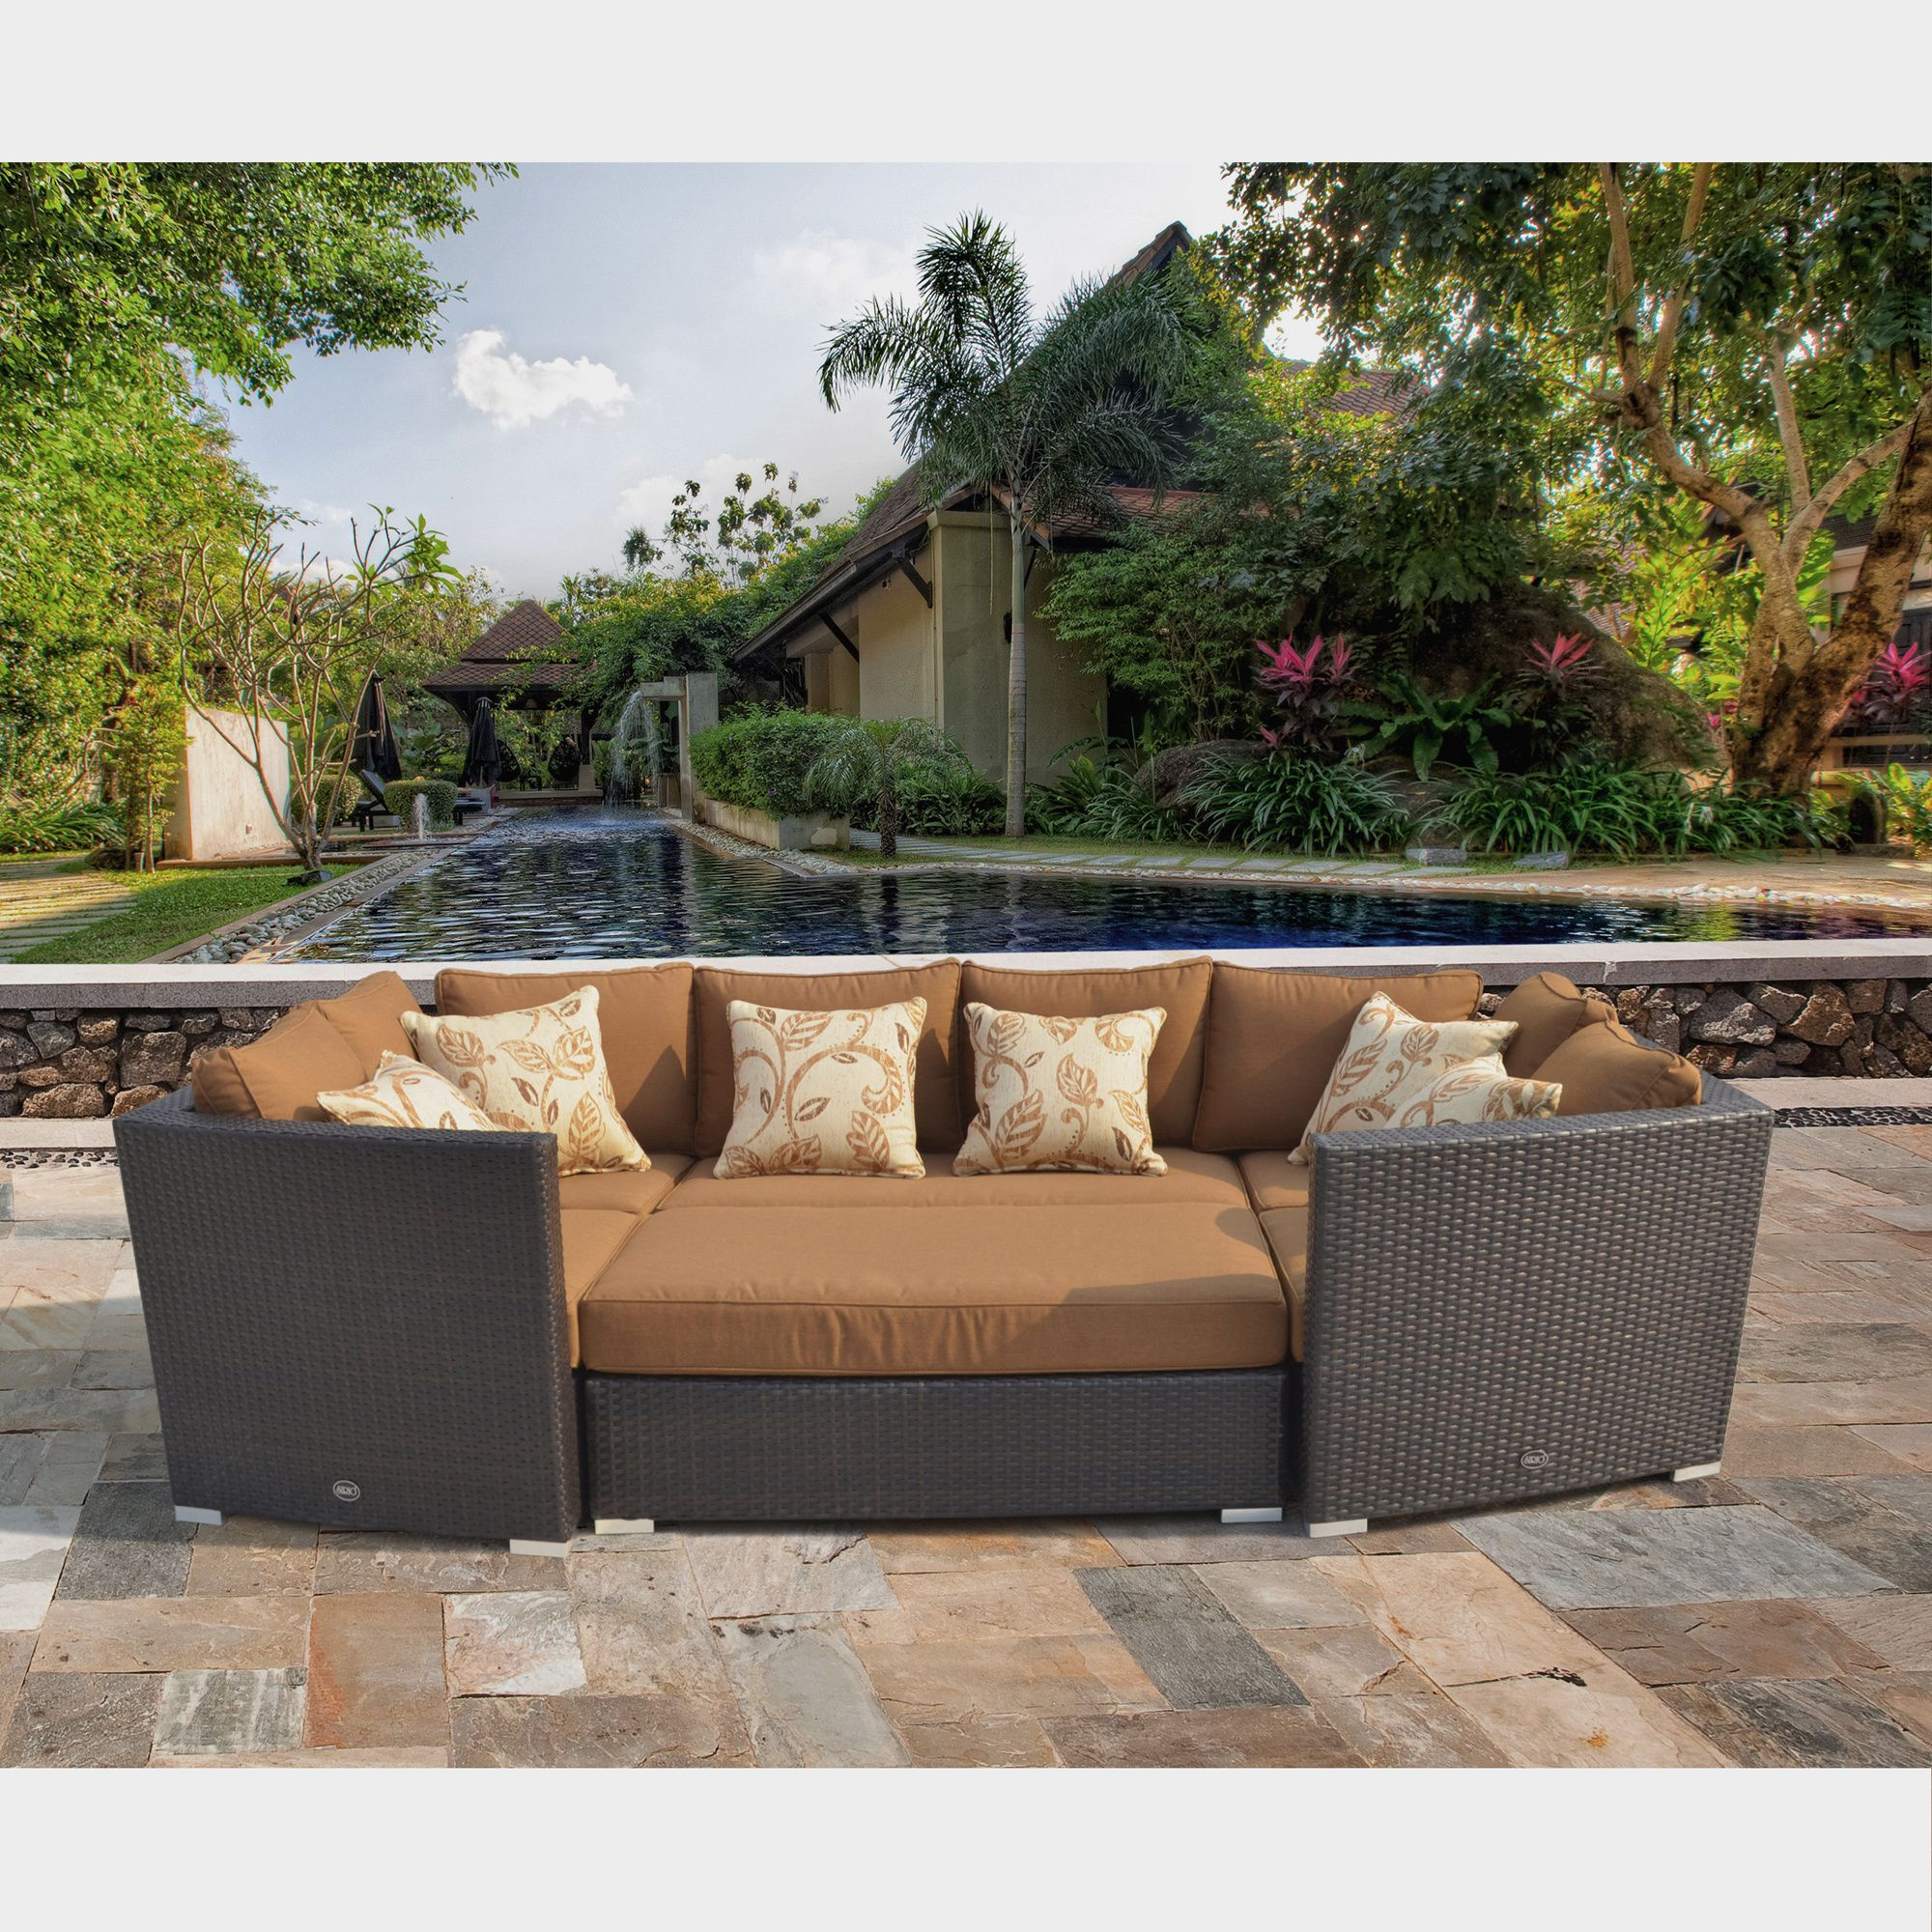 Corvus batavia outdoor piece brown wicker sofa set with sunbrella